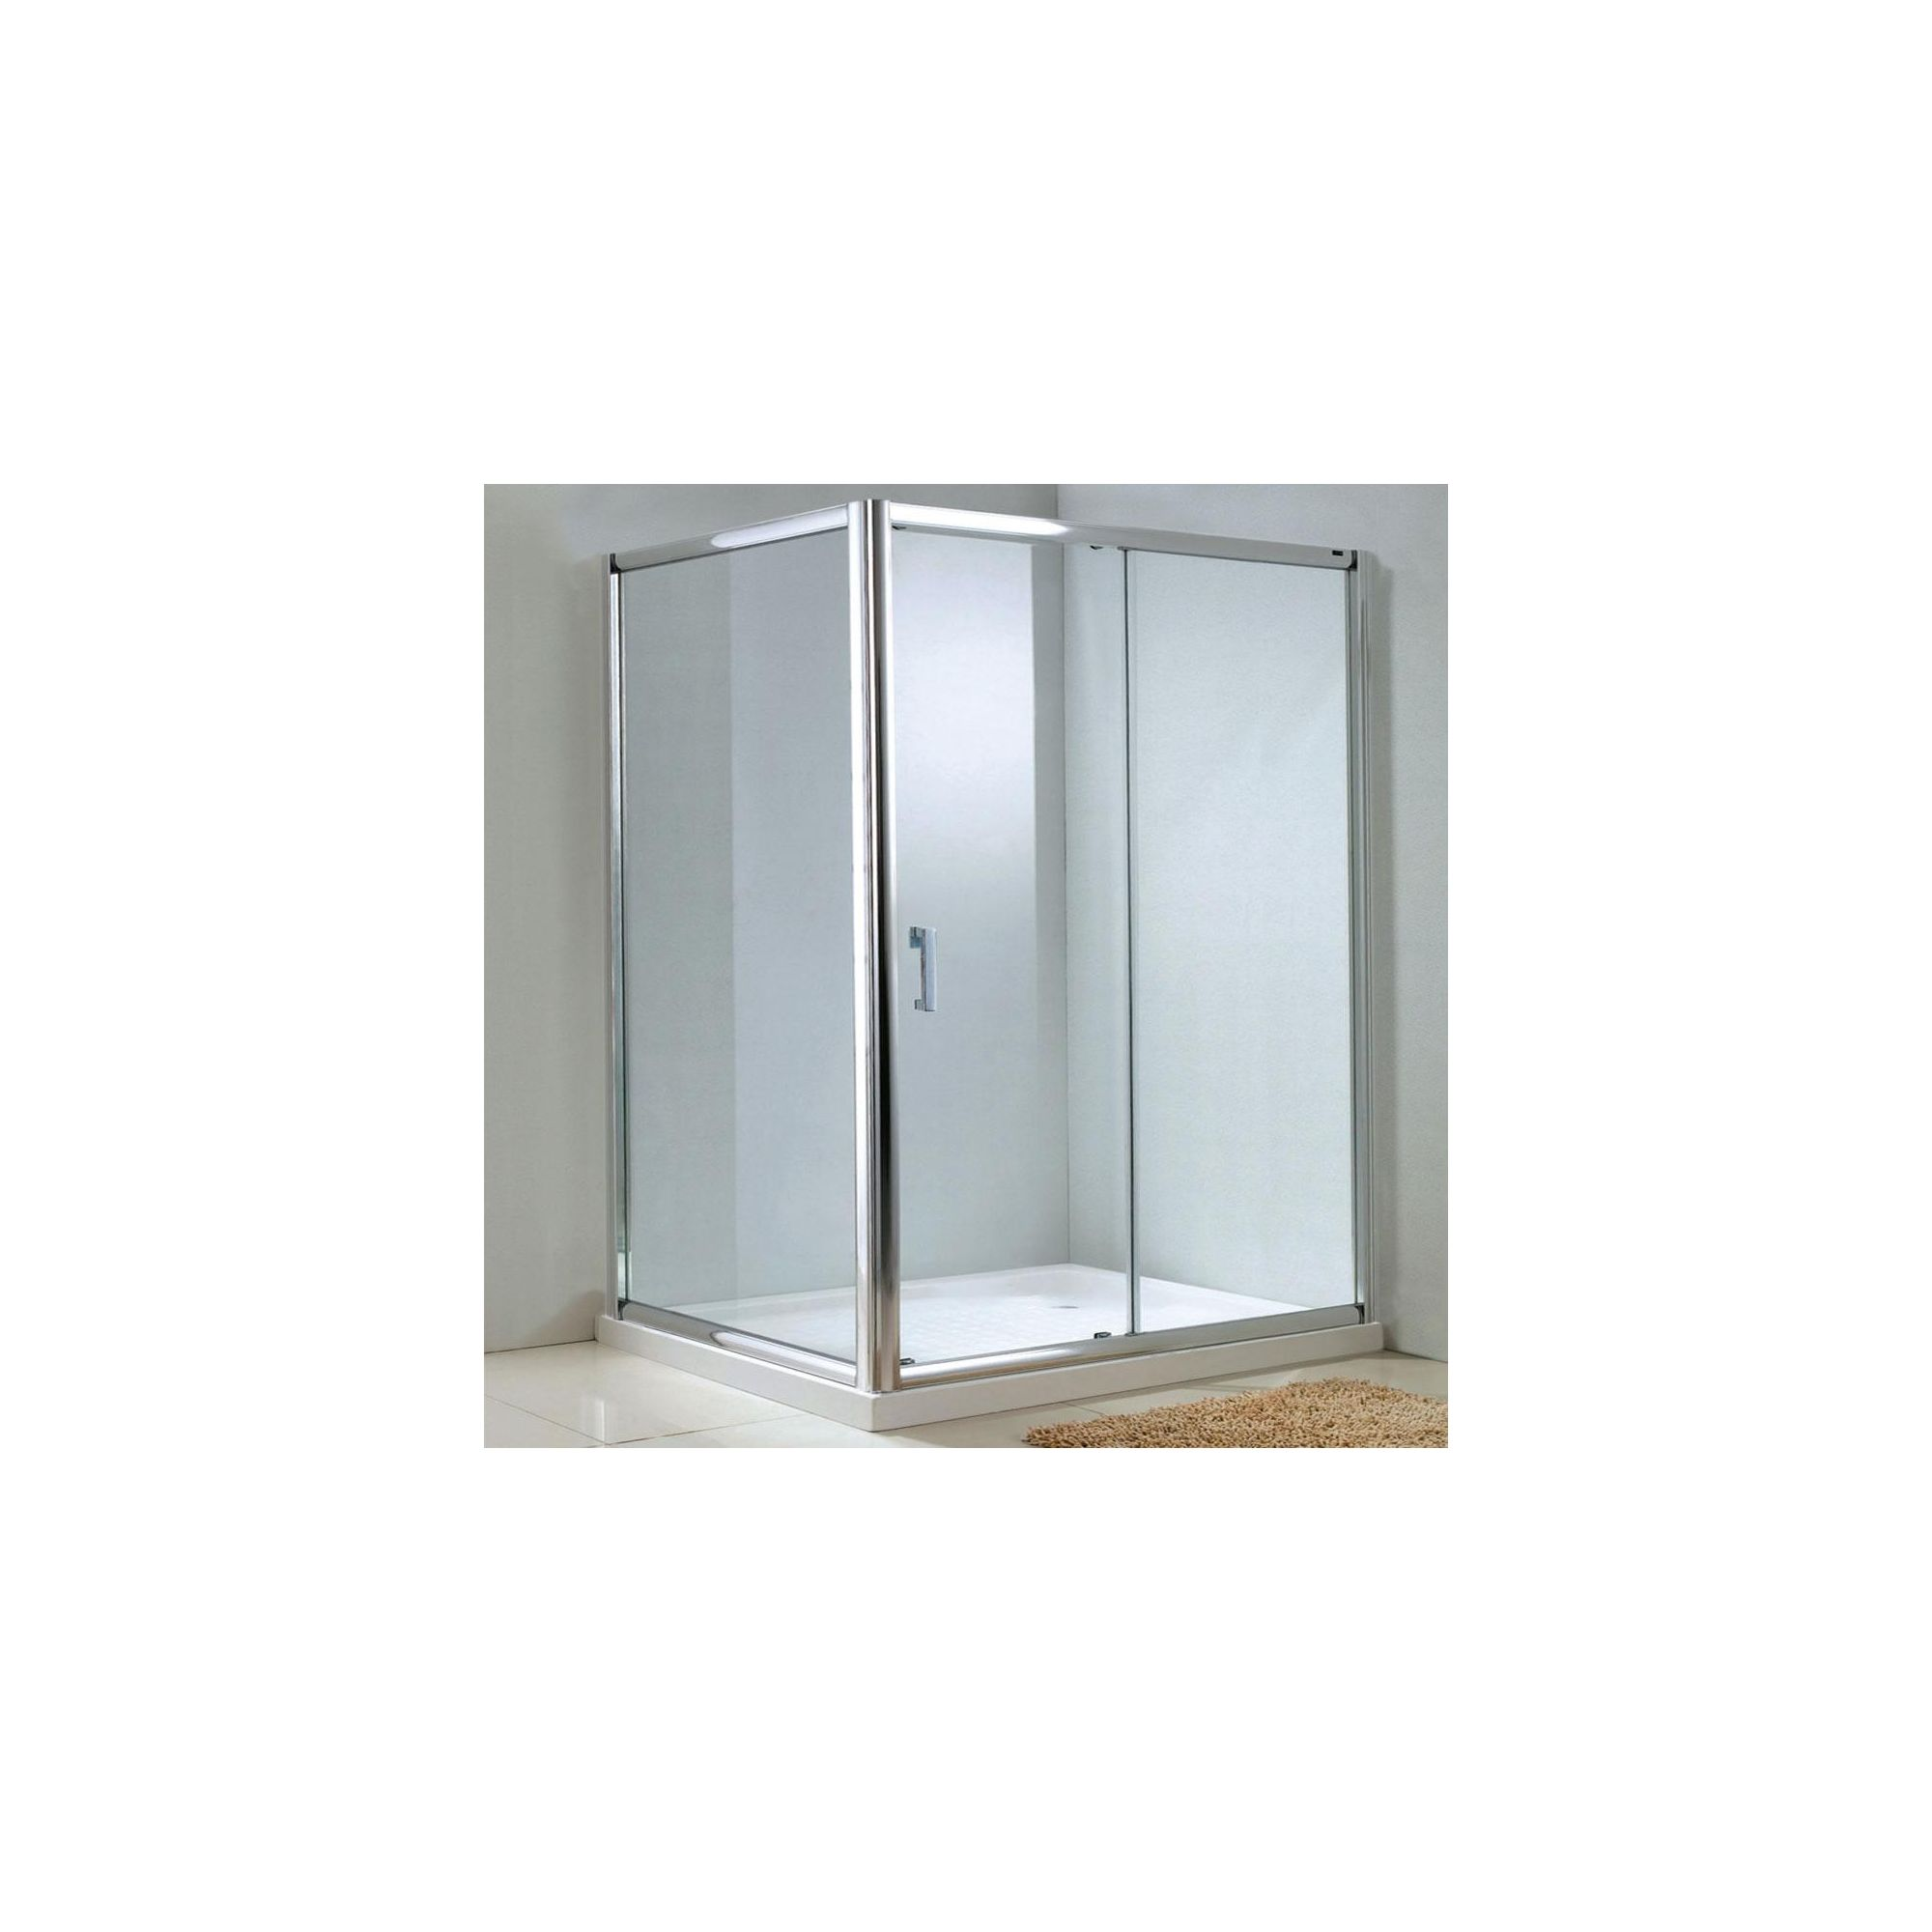 Duchy Style Single Sliding Door Shower Enclosure, 1200mm x 900mm, 6mm Glass, Low Profile Tray at Tesco Direct